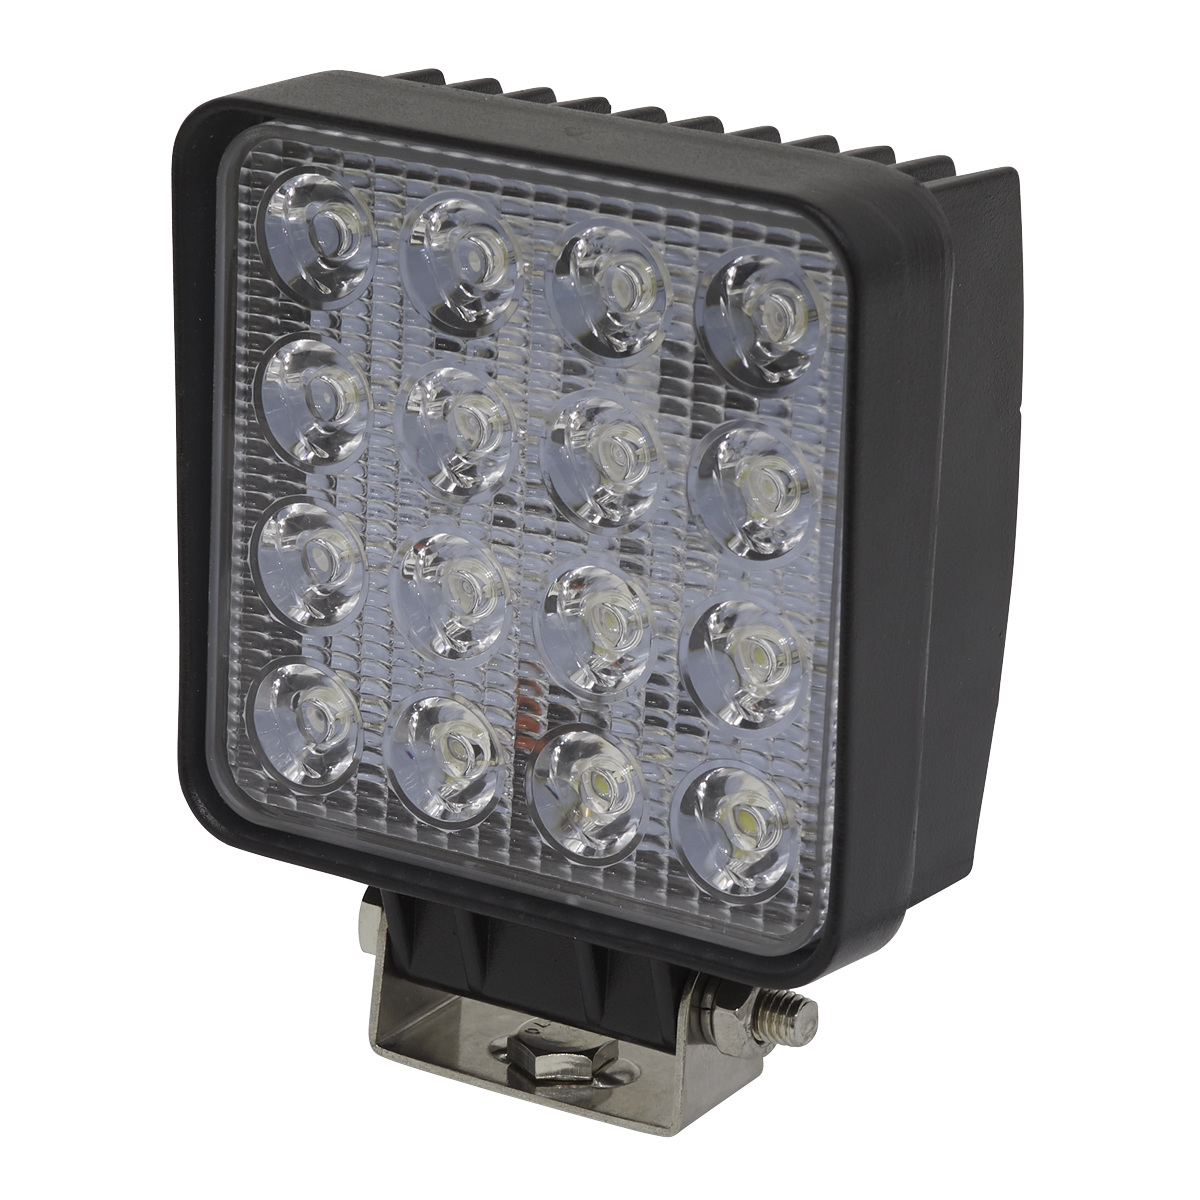 LED5S_PIC2_DFC0203021-1.png